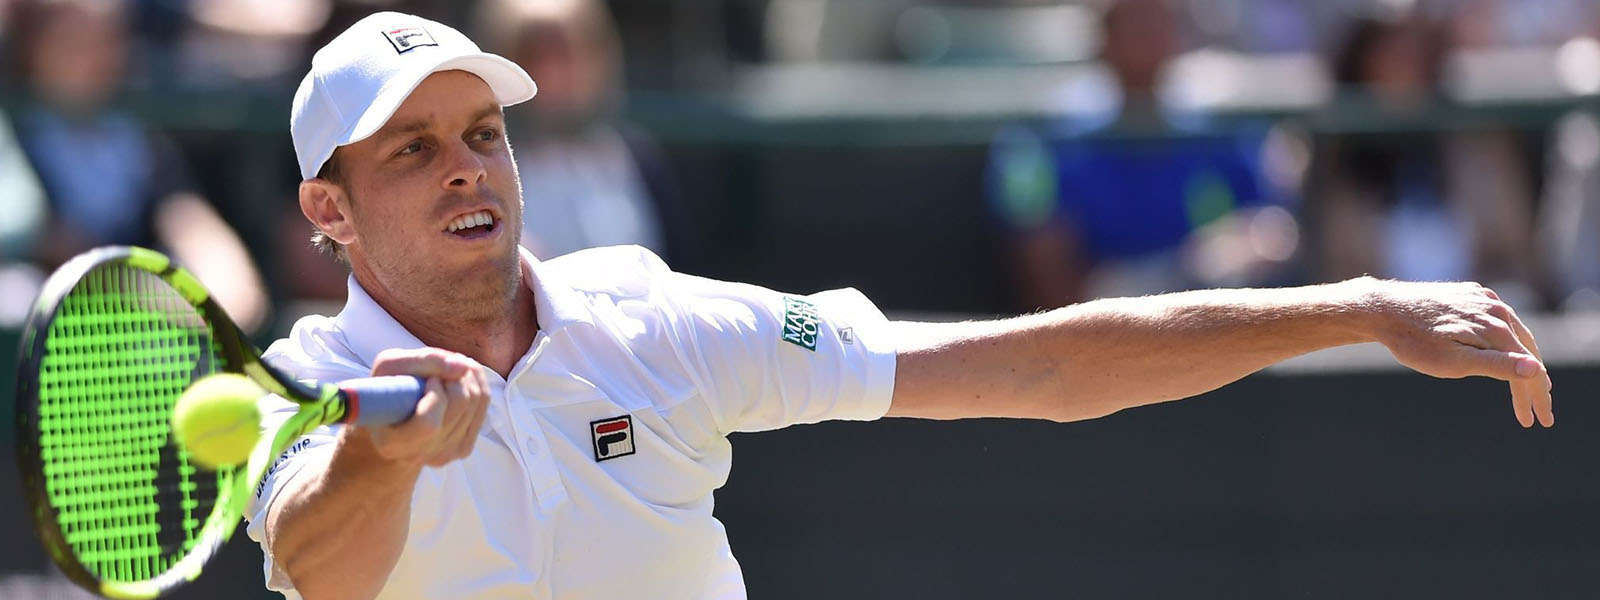 Banner image of Sam Querrey